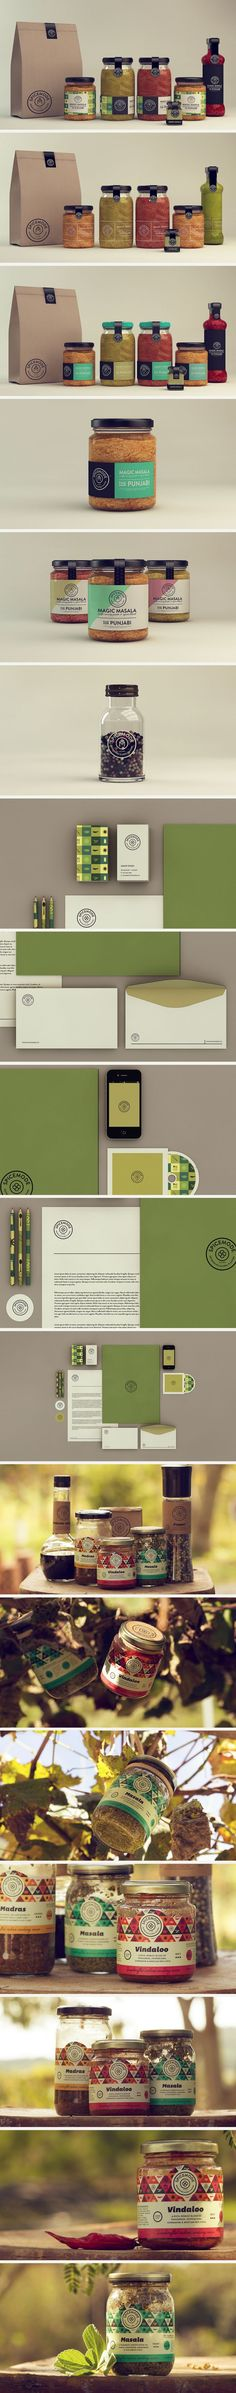 Spicemode Foods identity and packaging by Isabela Rodrigues